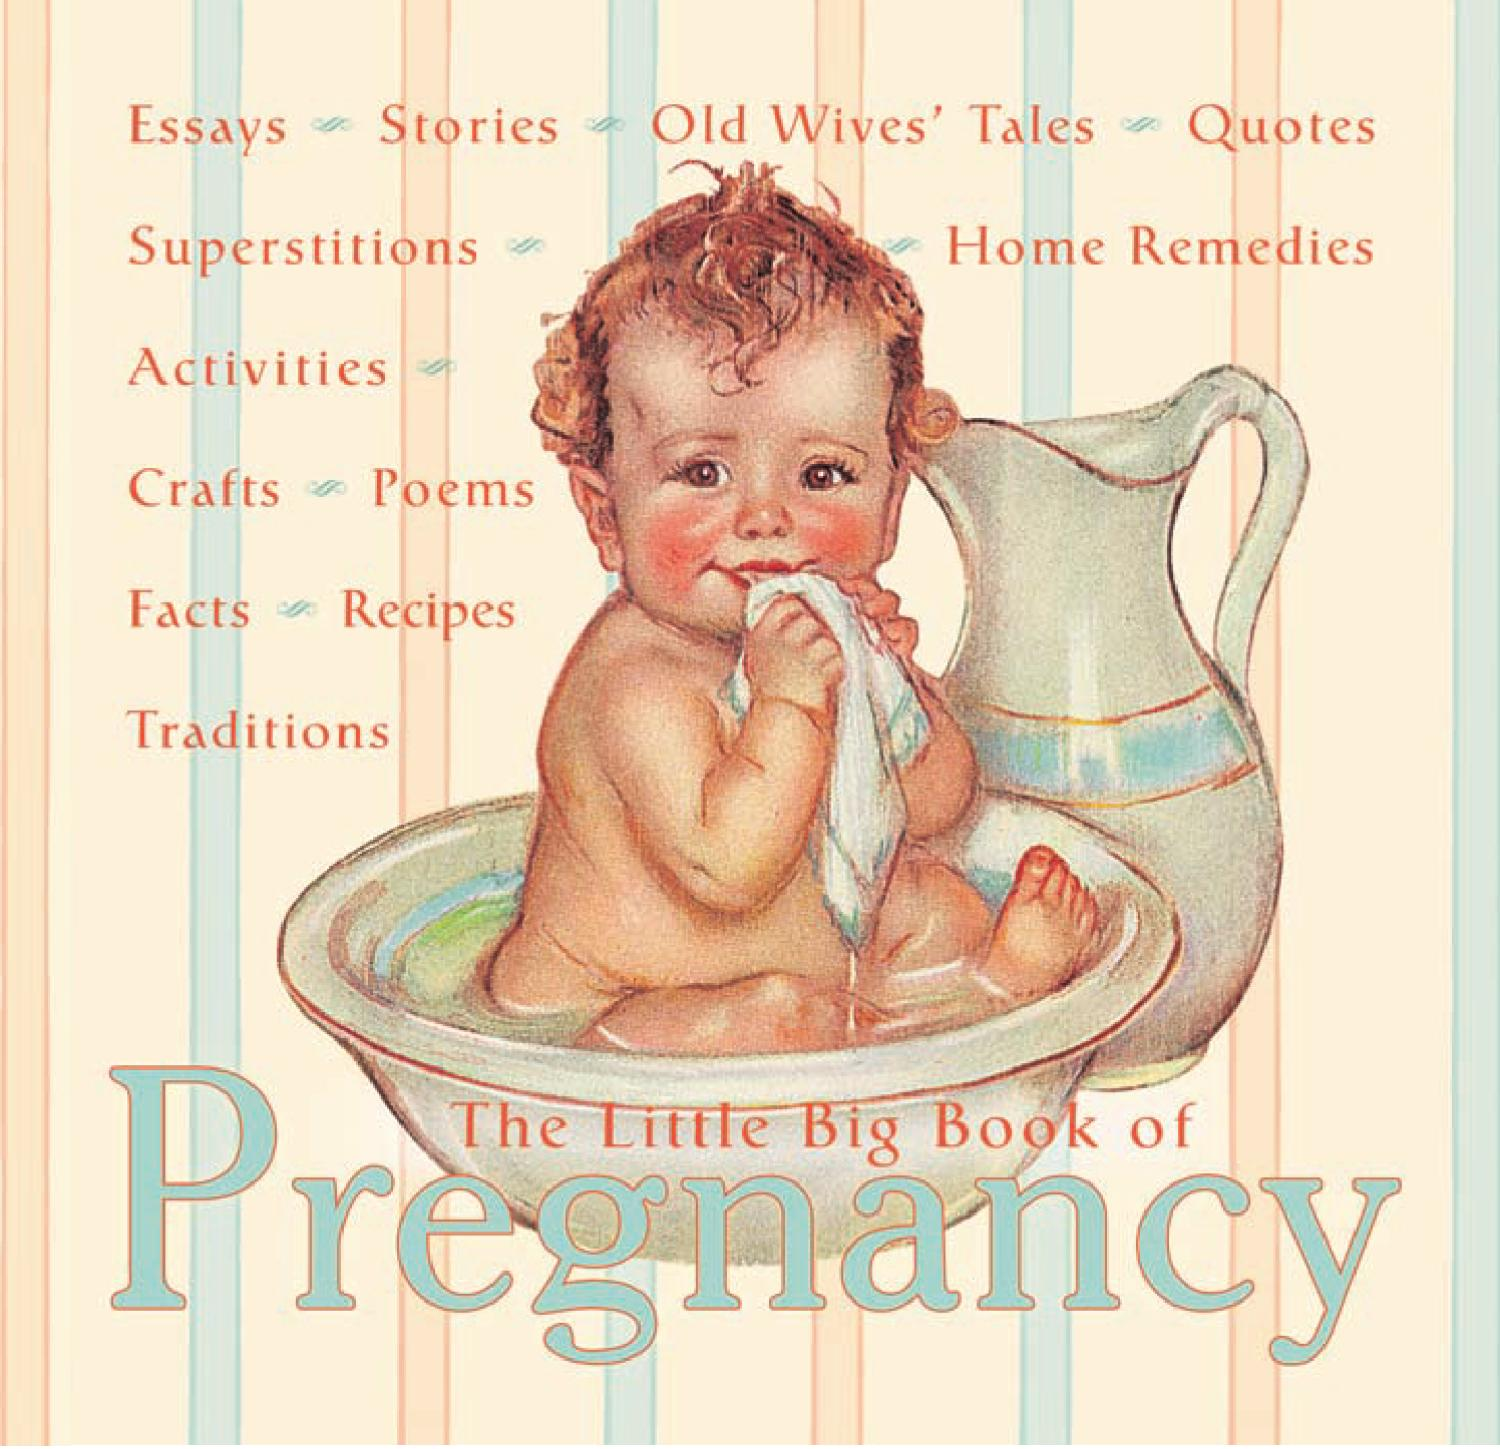 bff95cf68 The Little Big Book of Pregnancy by Welcome Books - issuu